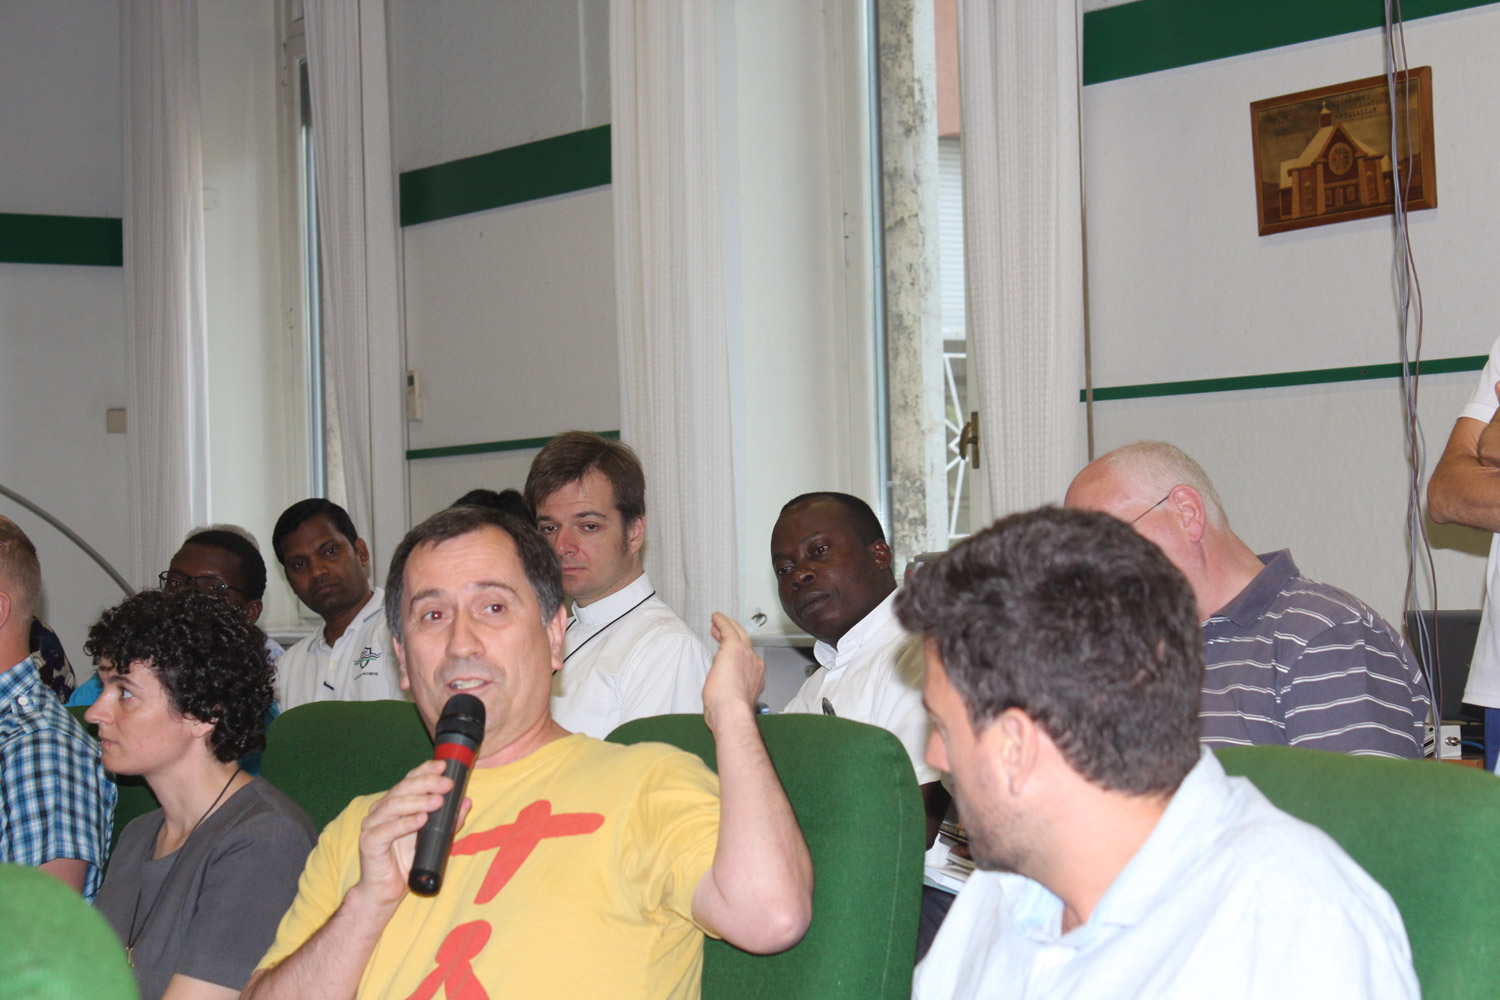 <b>Congress on Oblate Charism - first day in Rome</b><br>Fr. Chicho Rouis OMI<br>Shanil Jayawardena OMI<br>June 30th, 2015